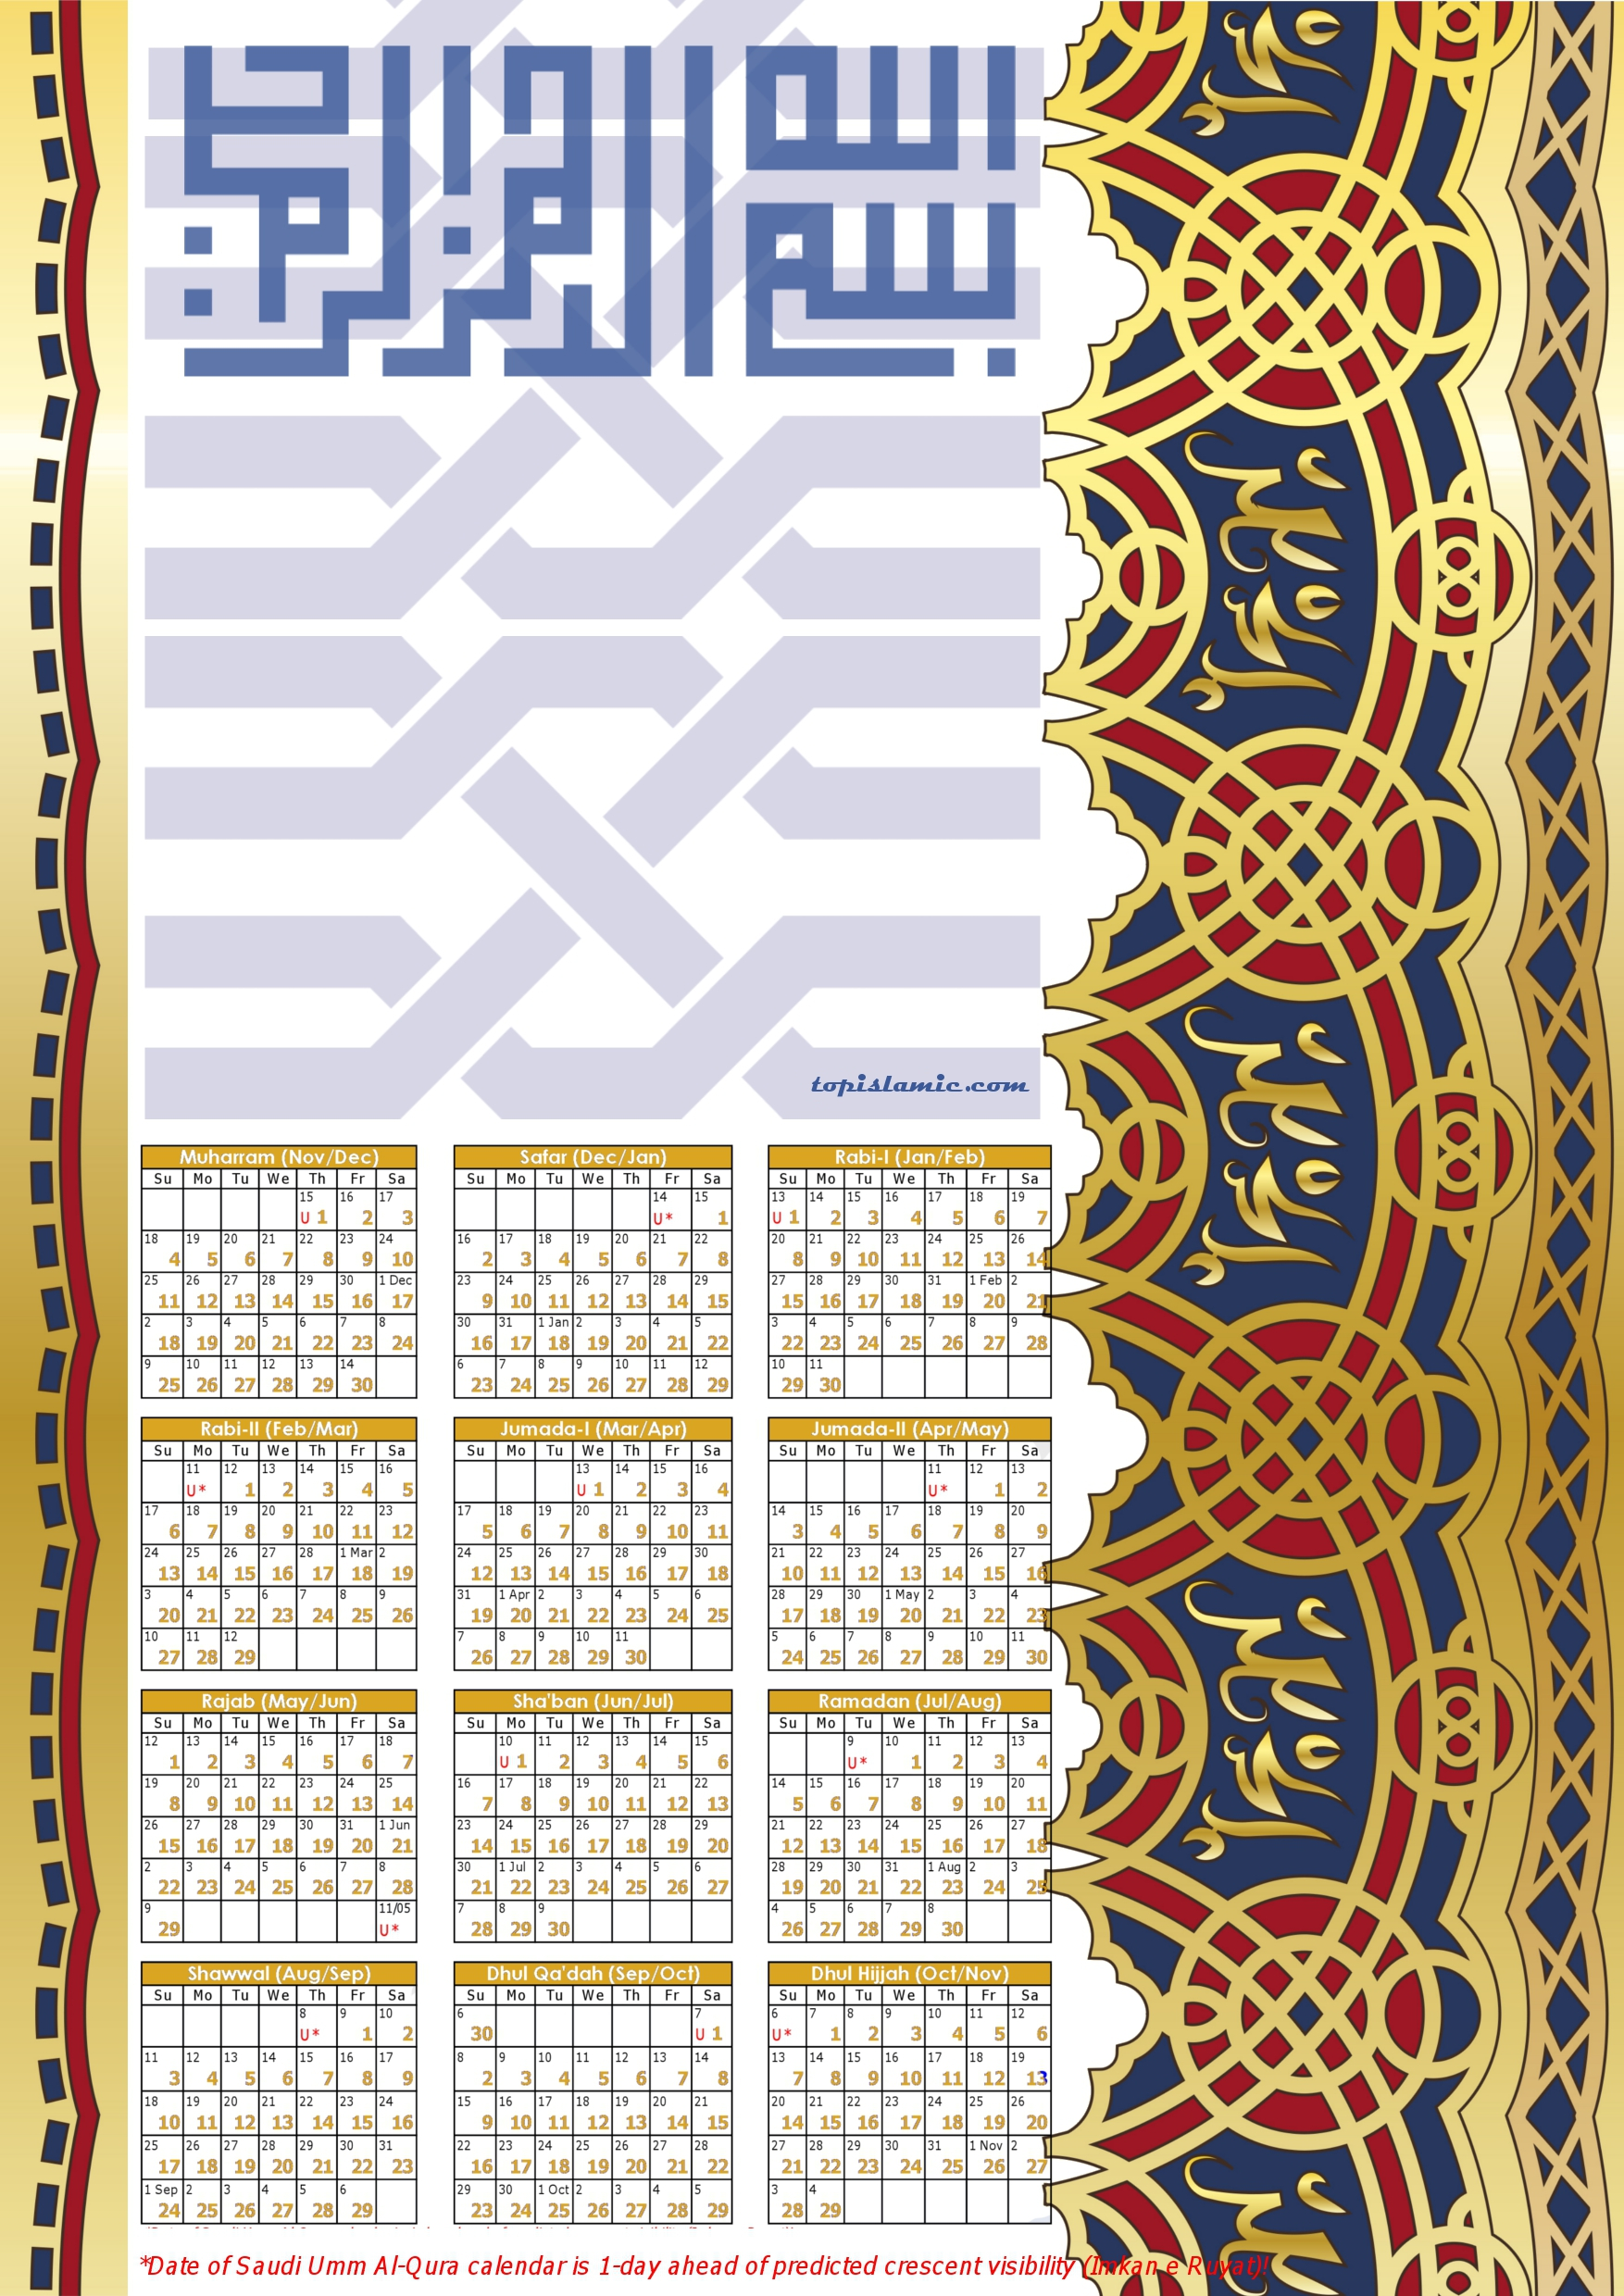 image of hijri calendar gold